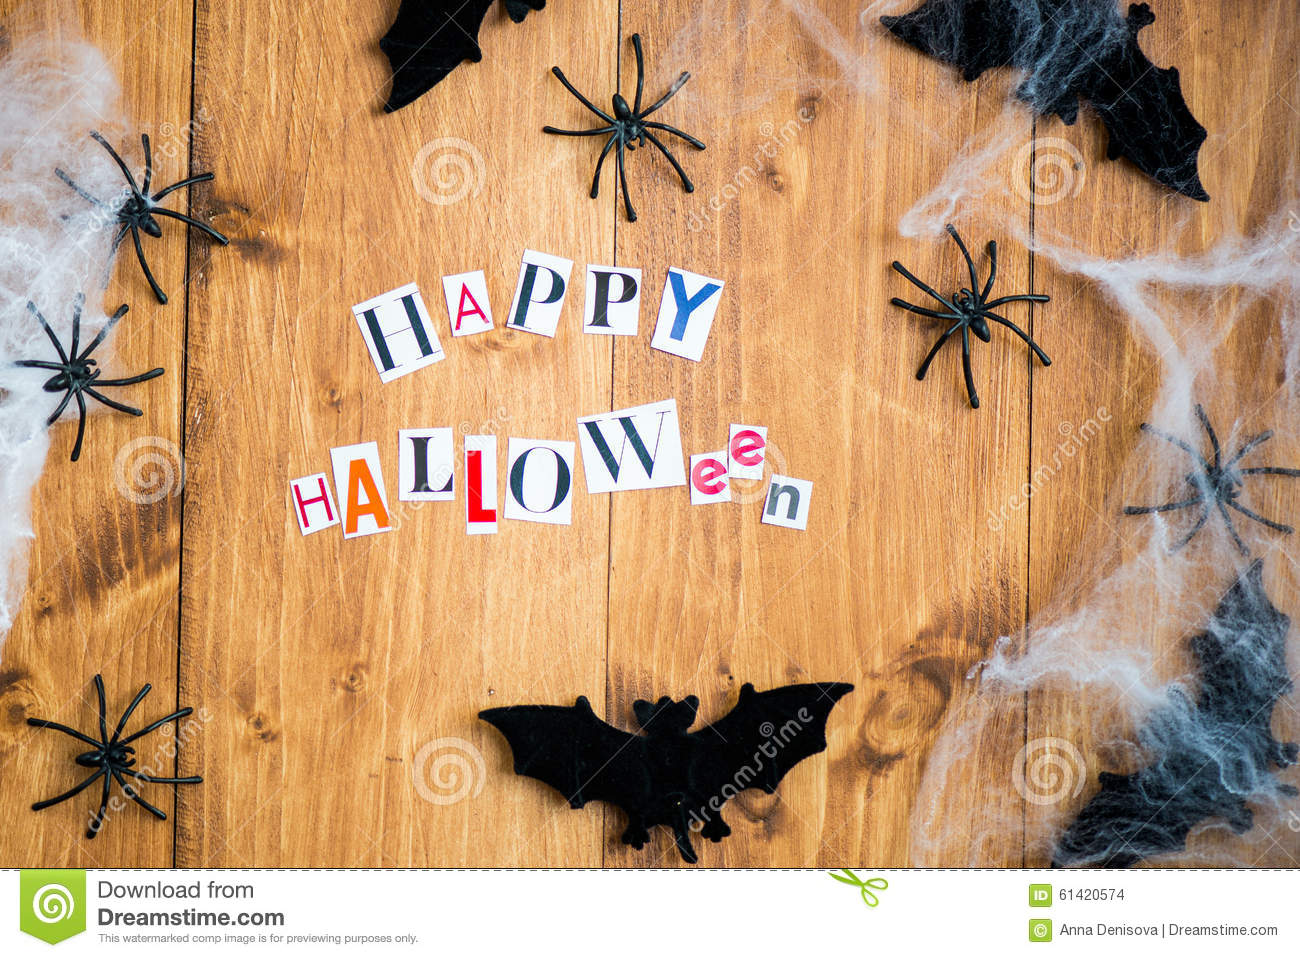 happy halloween letters cut out from the magazines, bats, web an